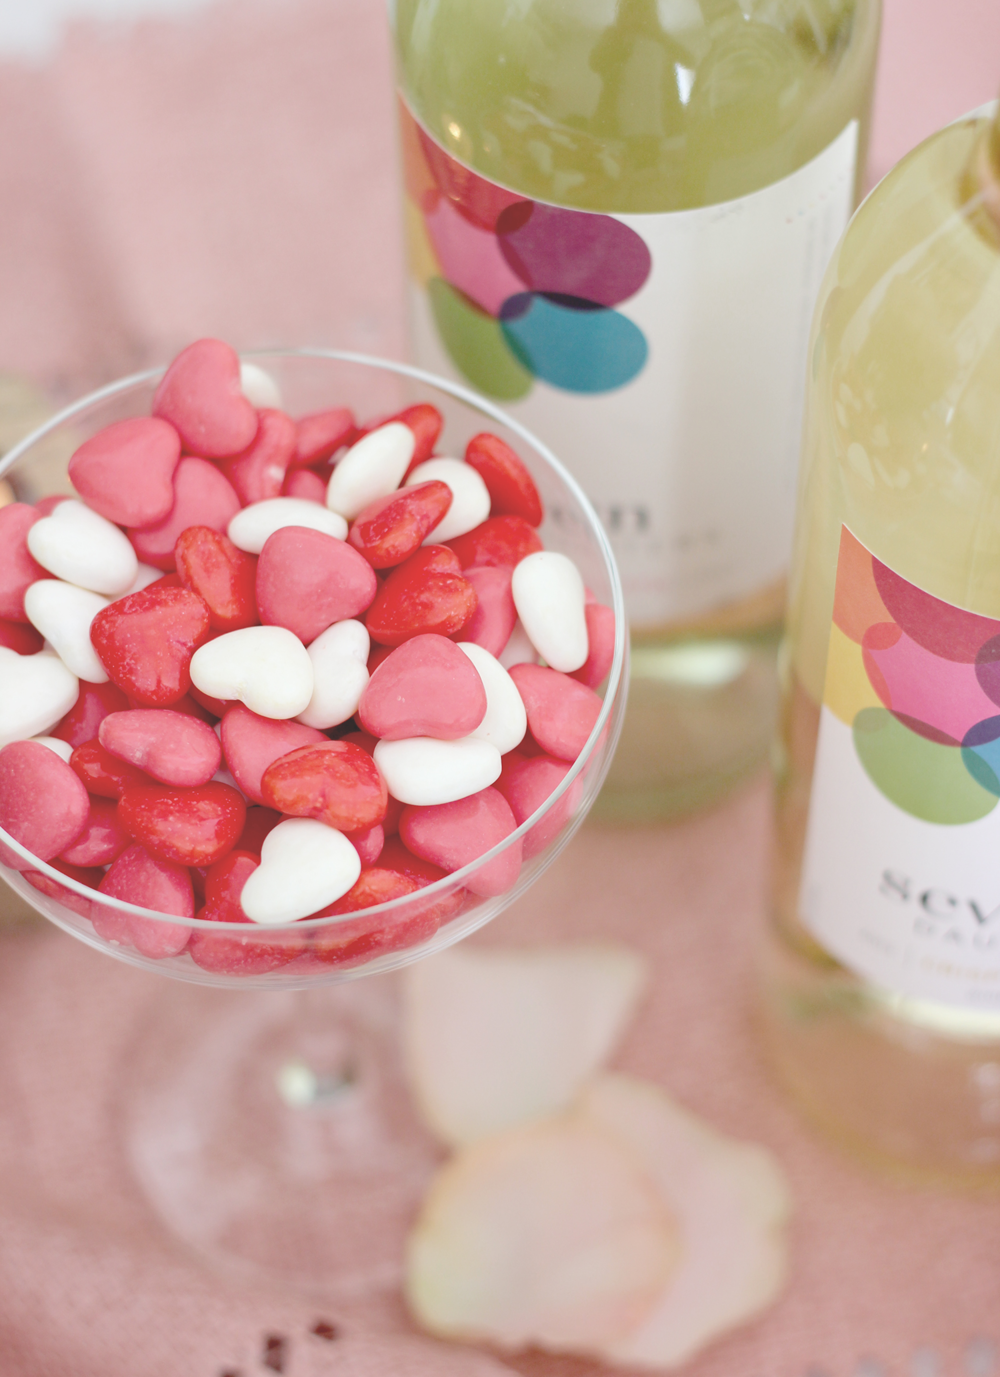 Heart shaped candy as decor | A Fabulous Fete